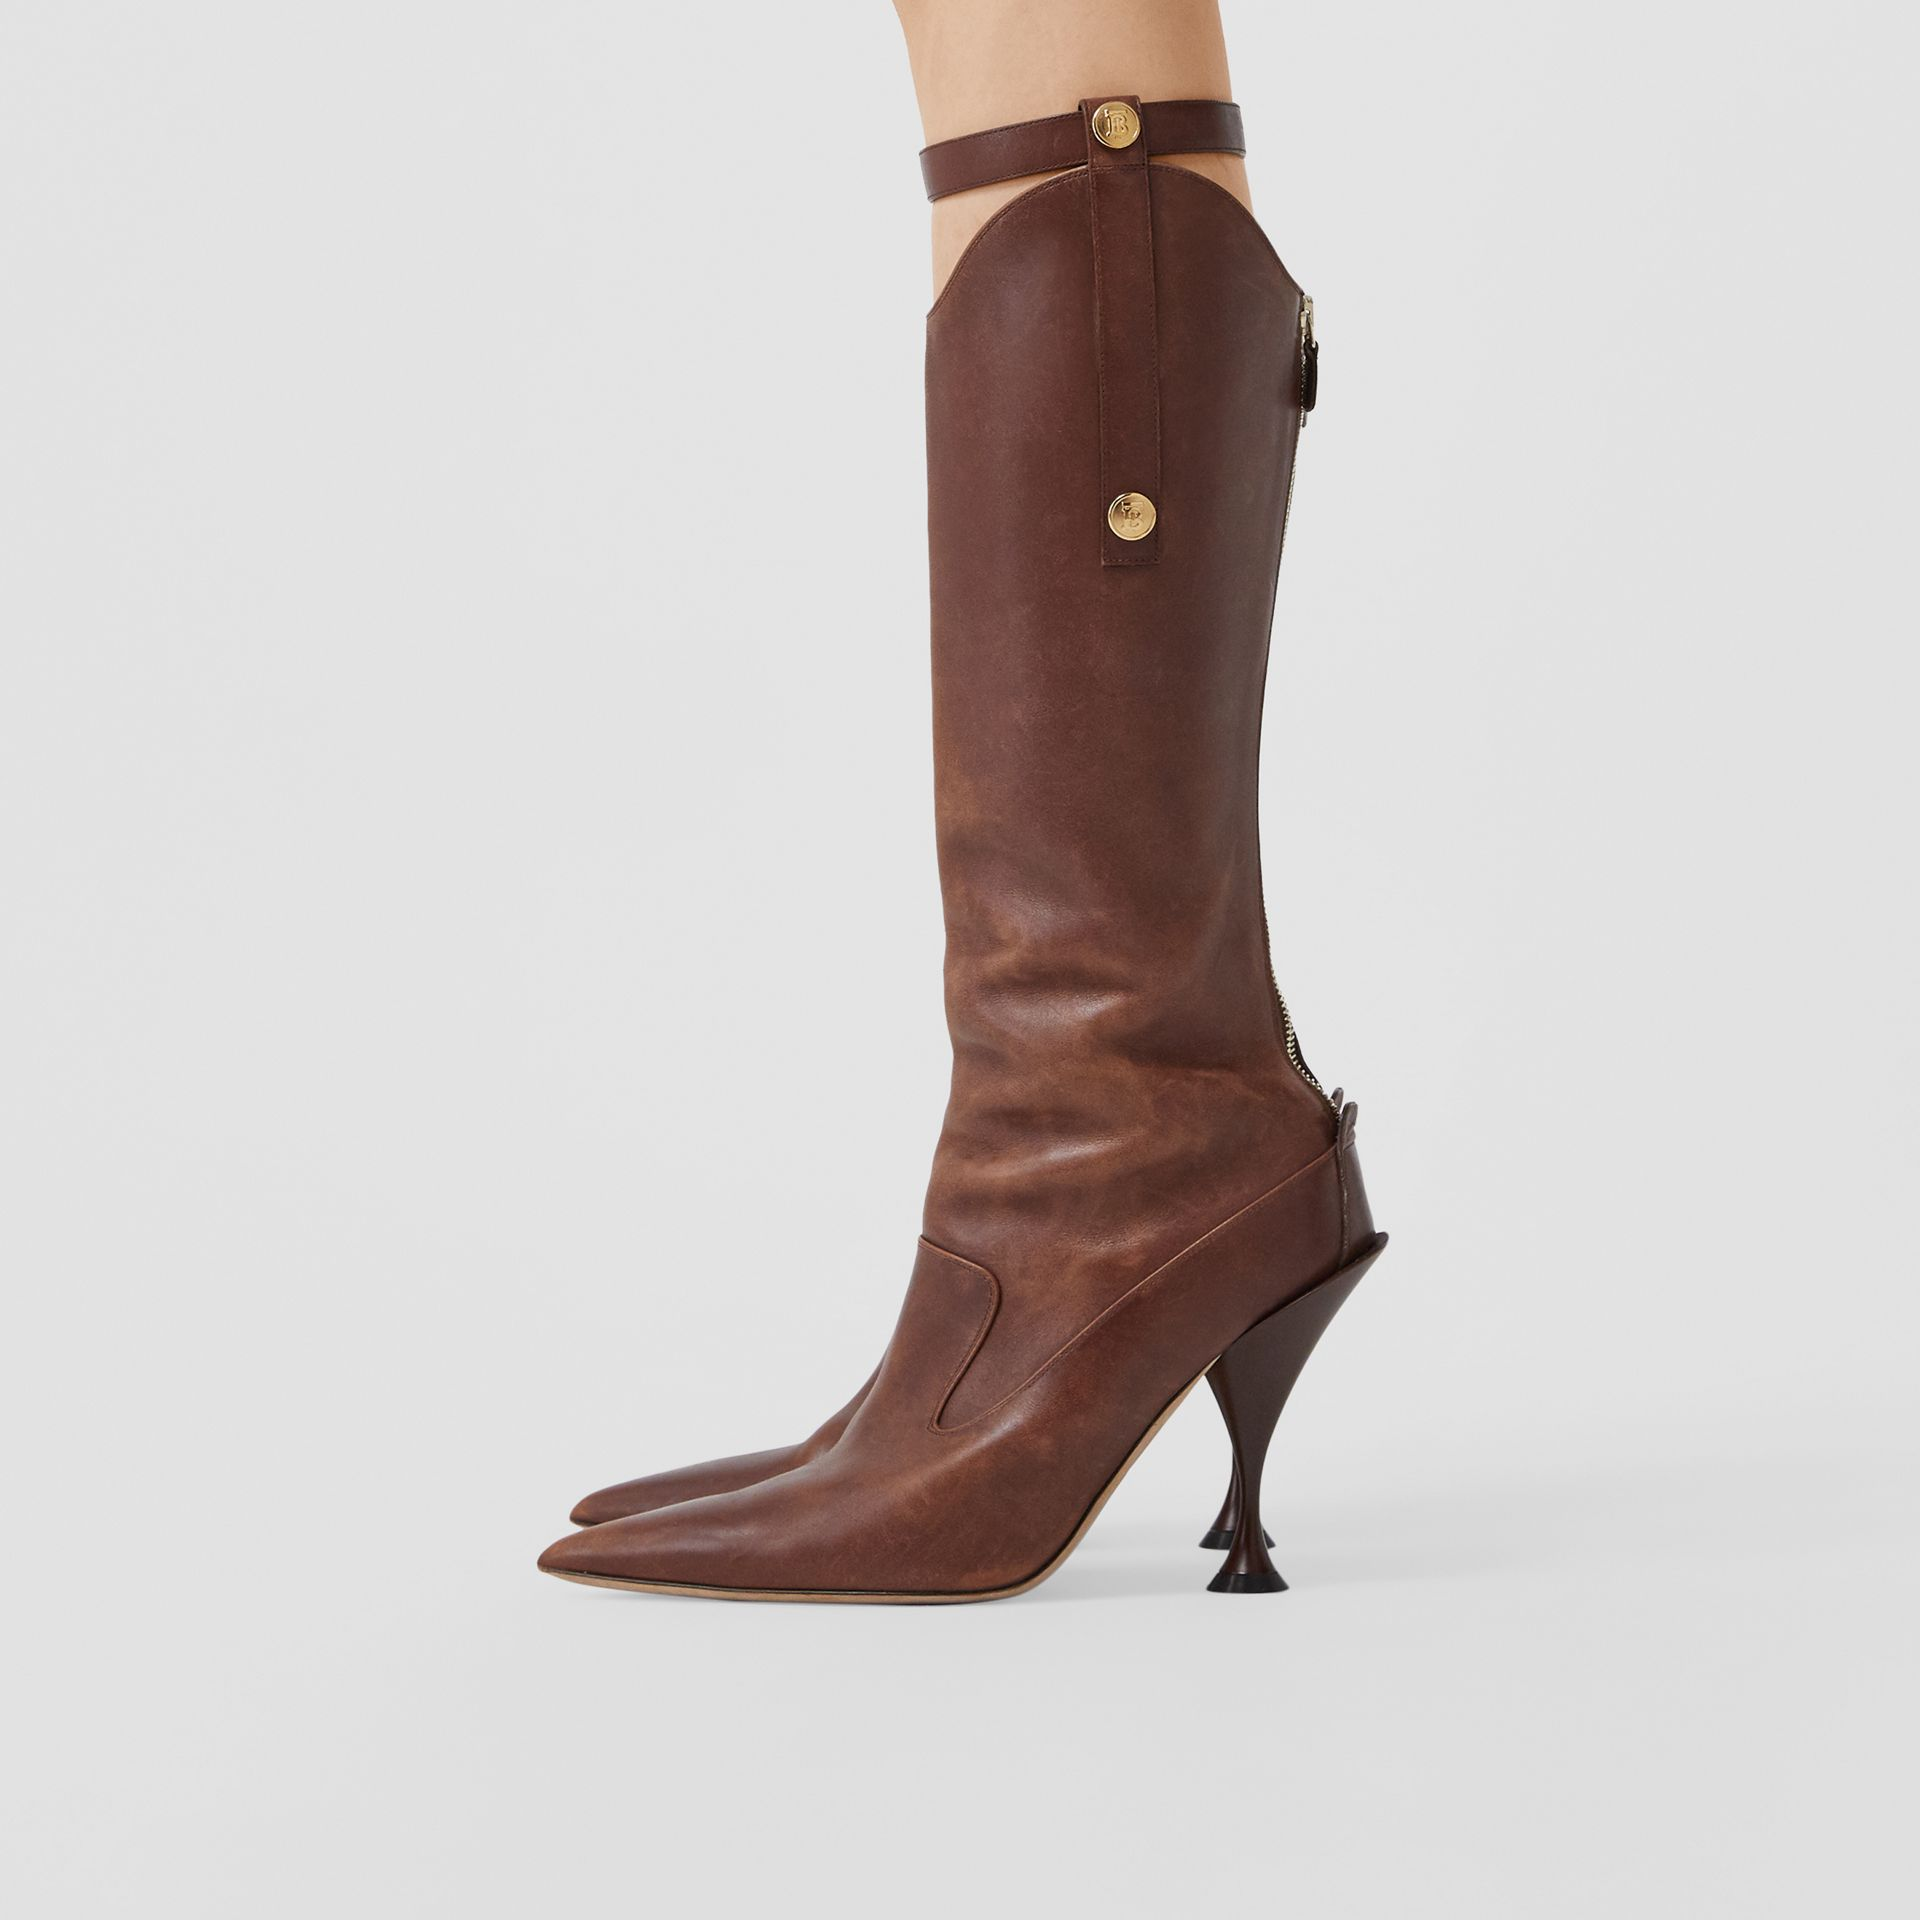 Monogram Motif Stud Detail Leather Boots in Dark Mocha - Women | Burberry - gallery image 2